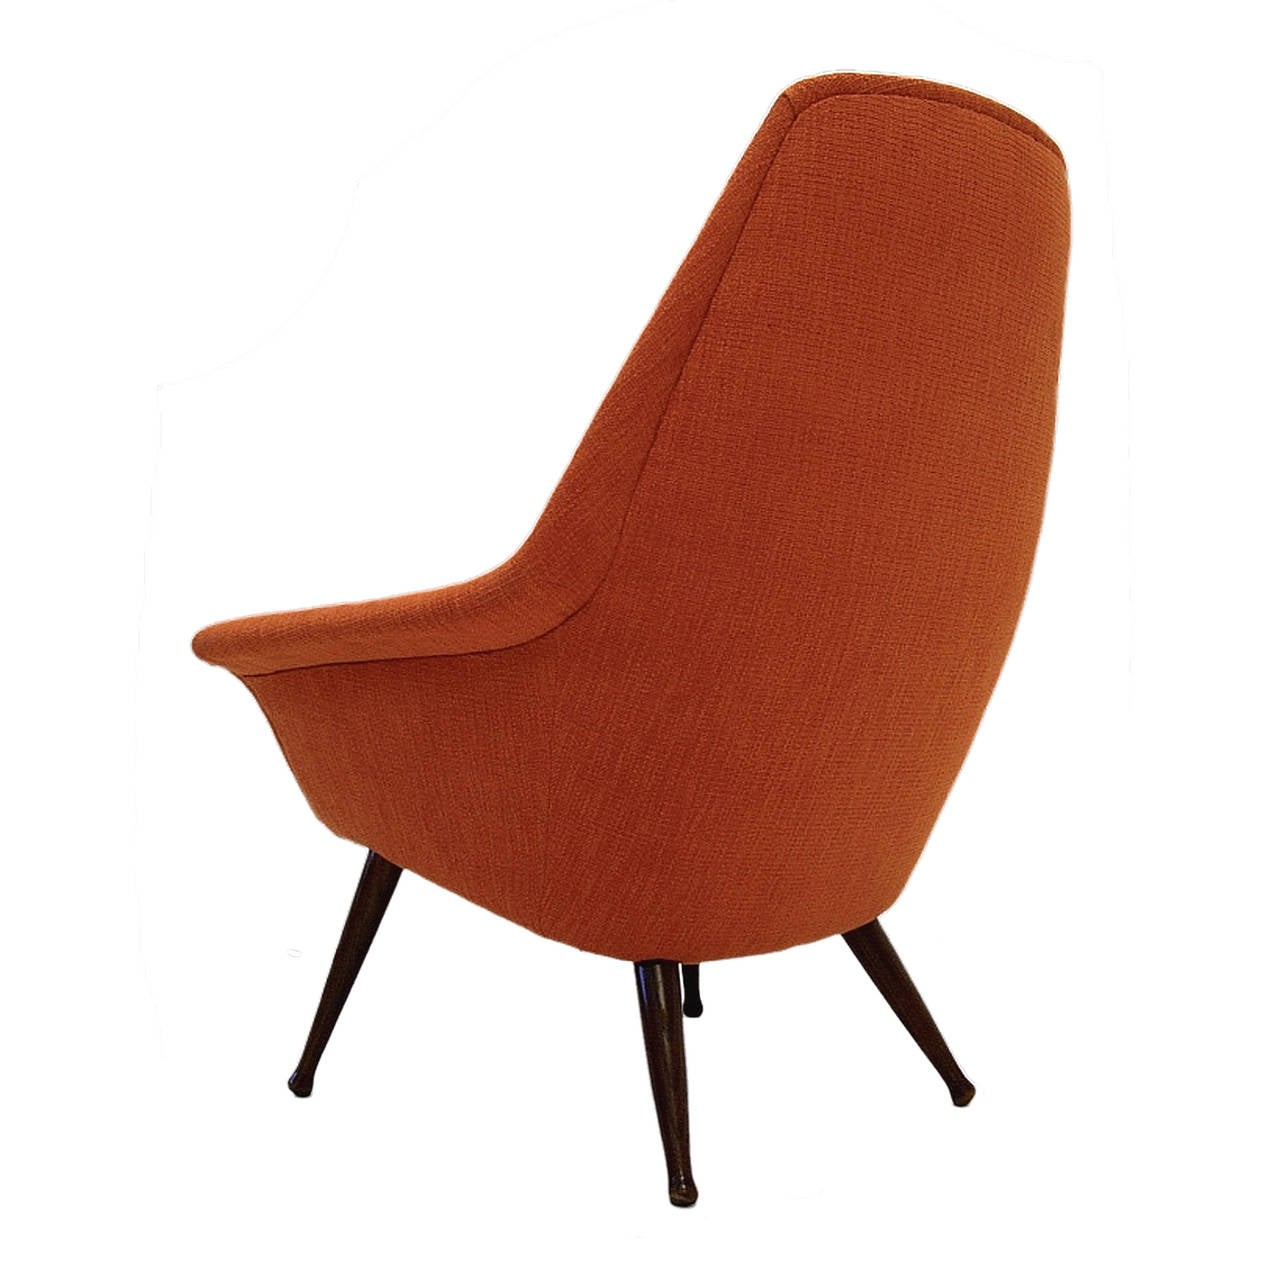 Midcentury Sleek Modern Sculptural Lounge Chair in New Orange Upholstery For